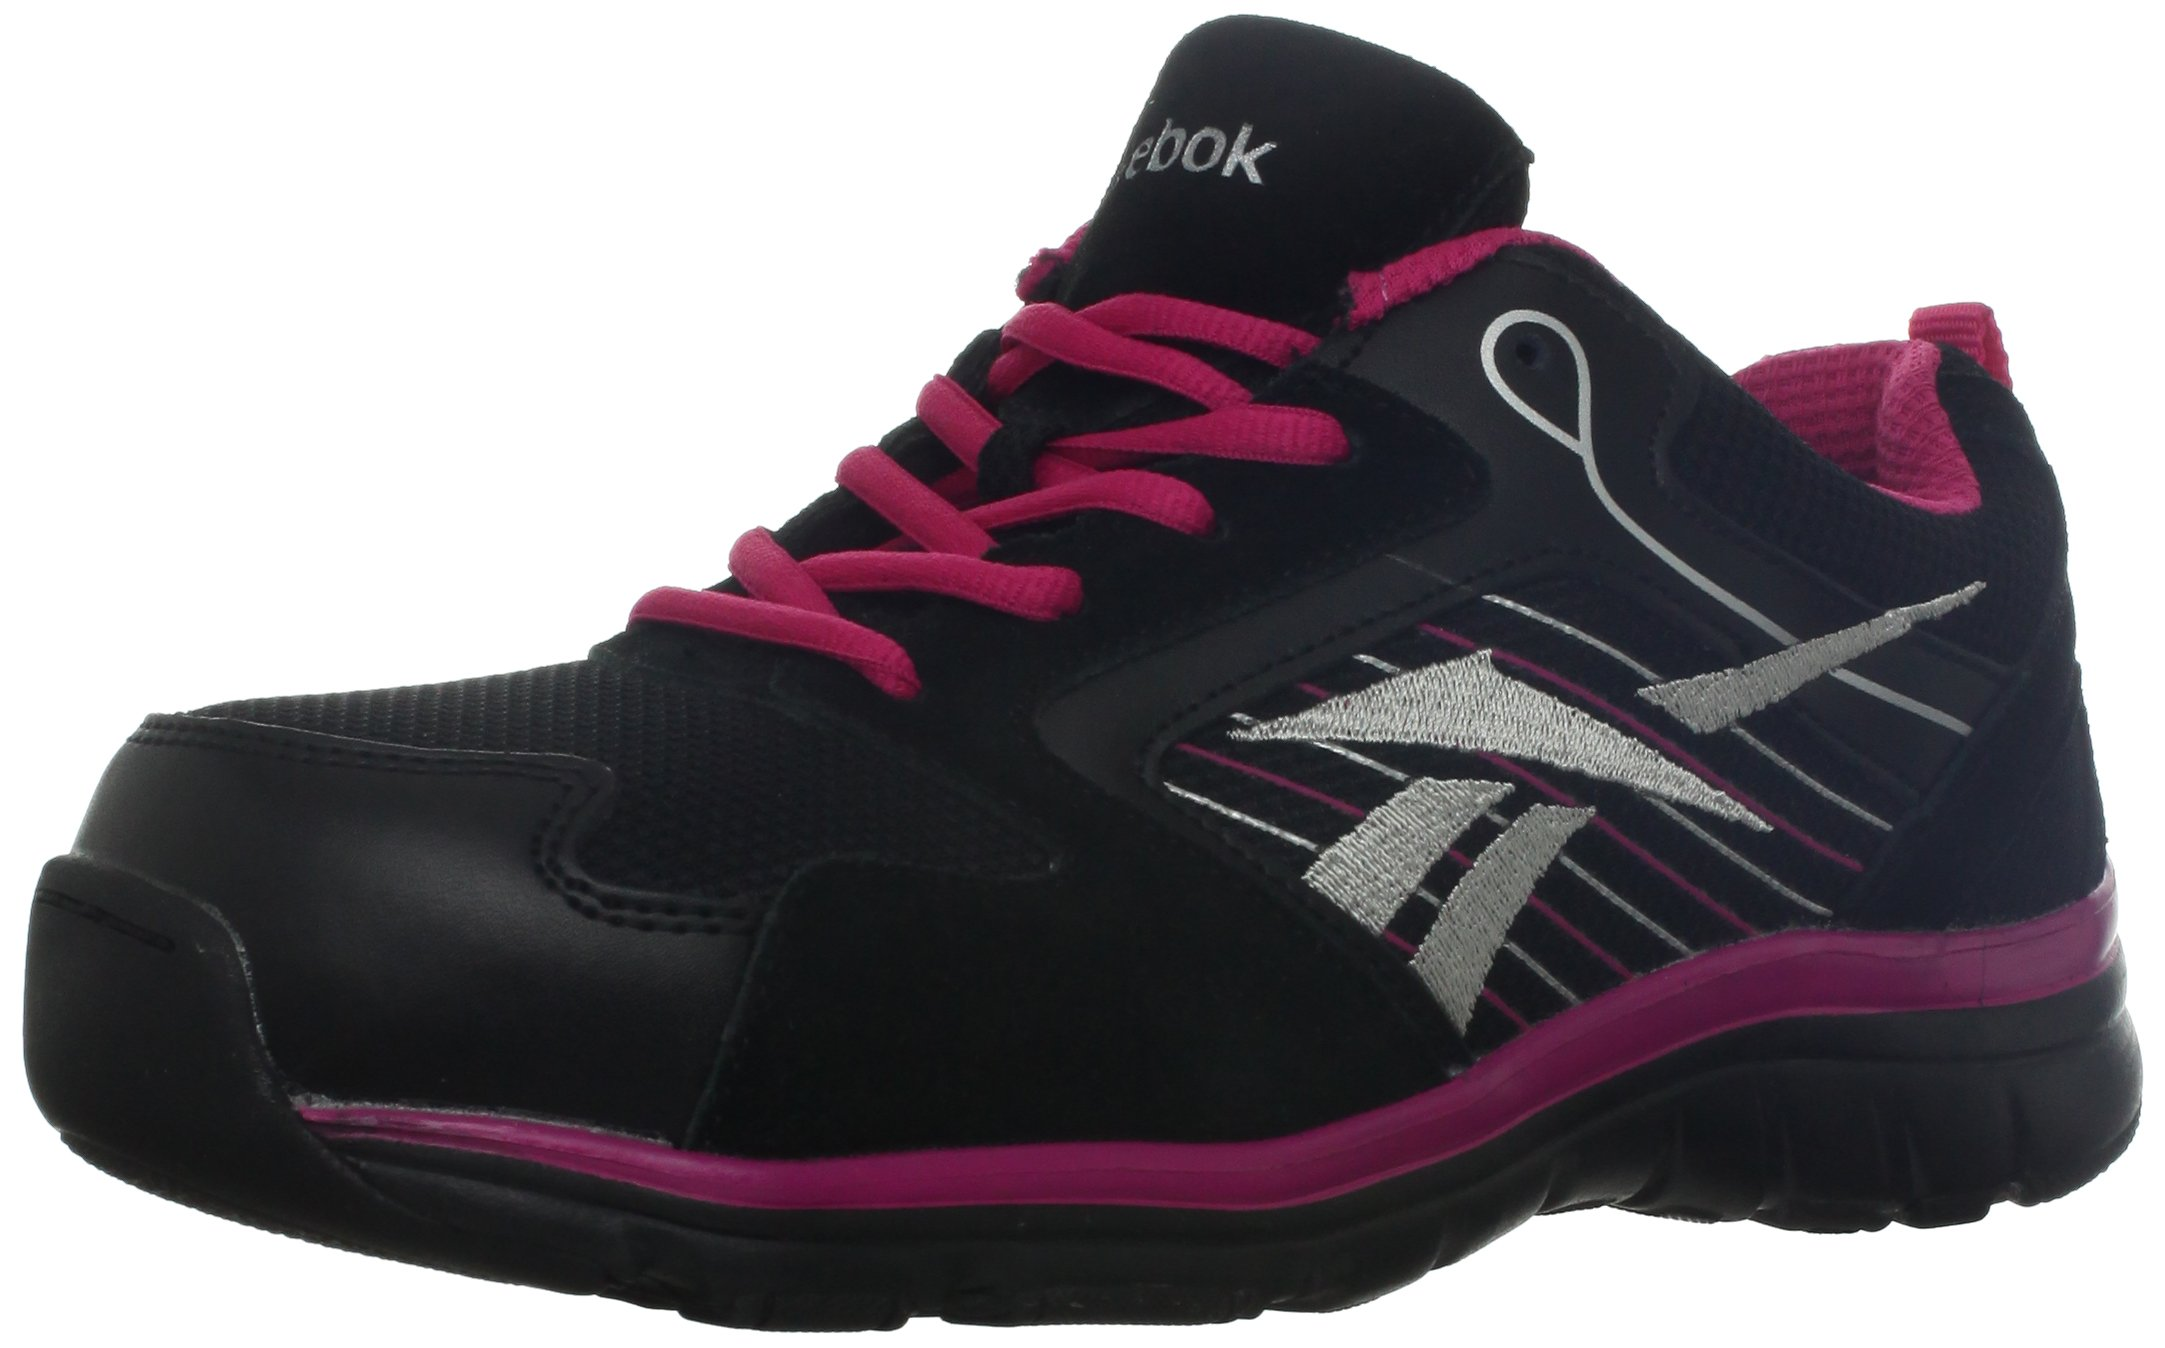 Reebok Work Women's Anomar RB454 Work Shoe,Black/Pink,10 W US